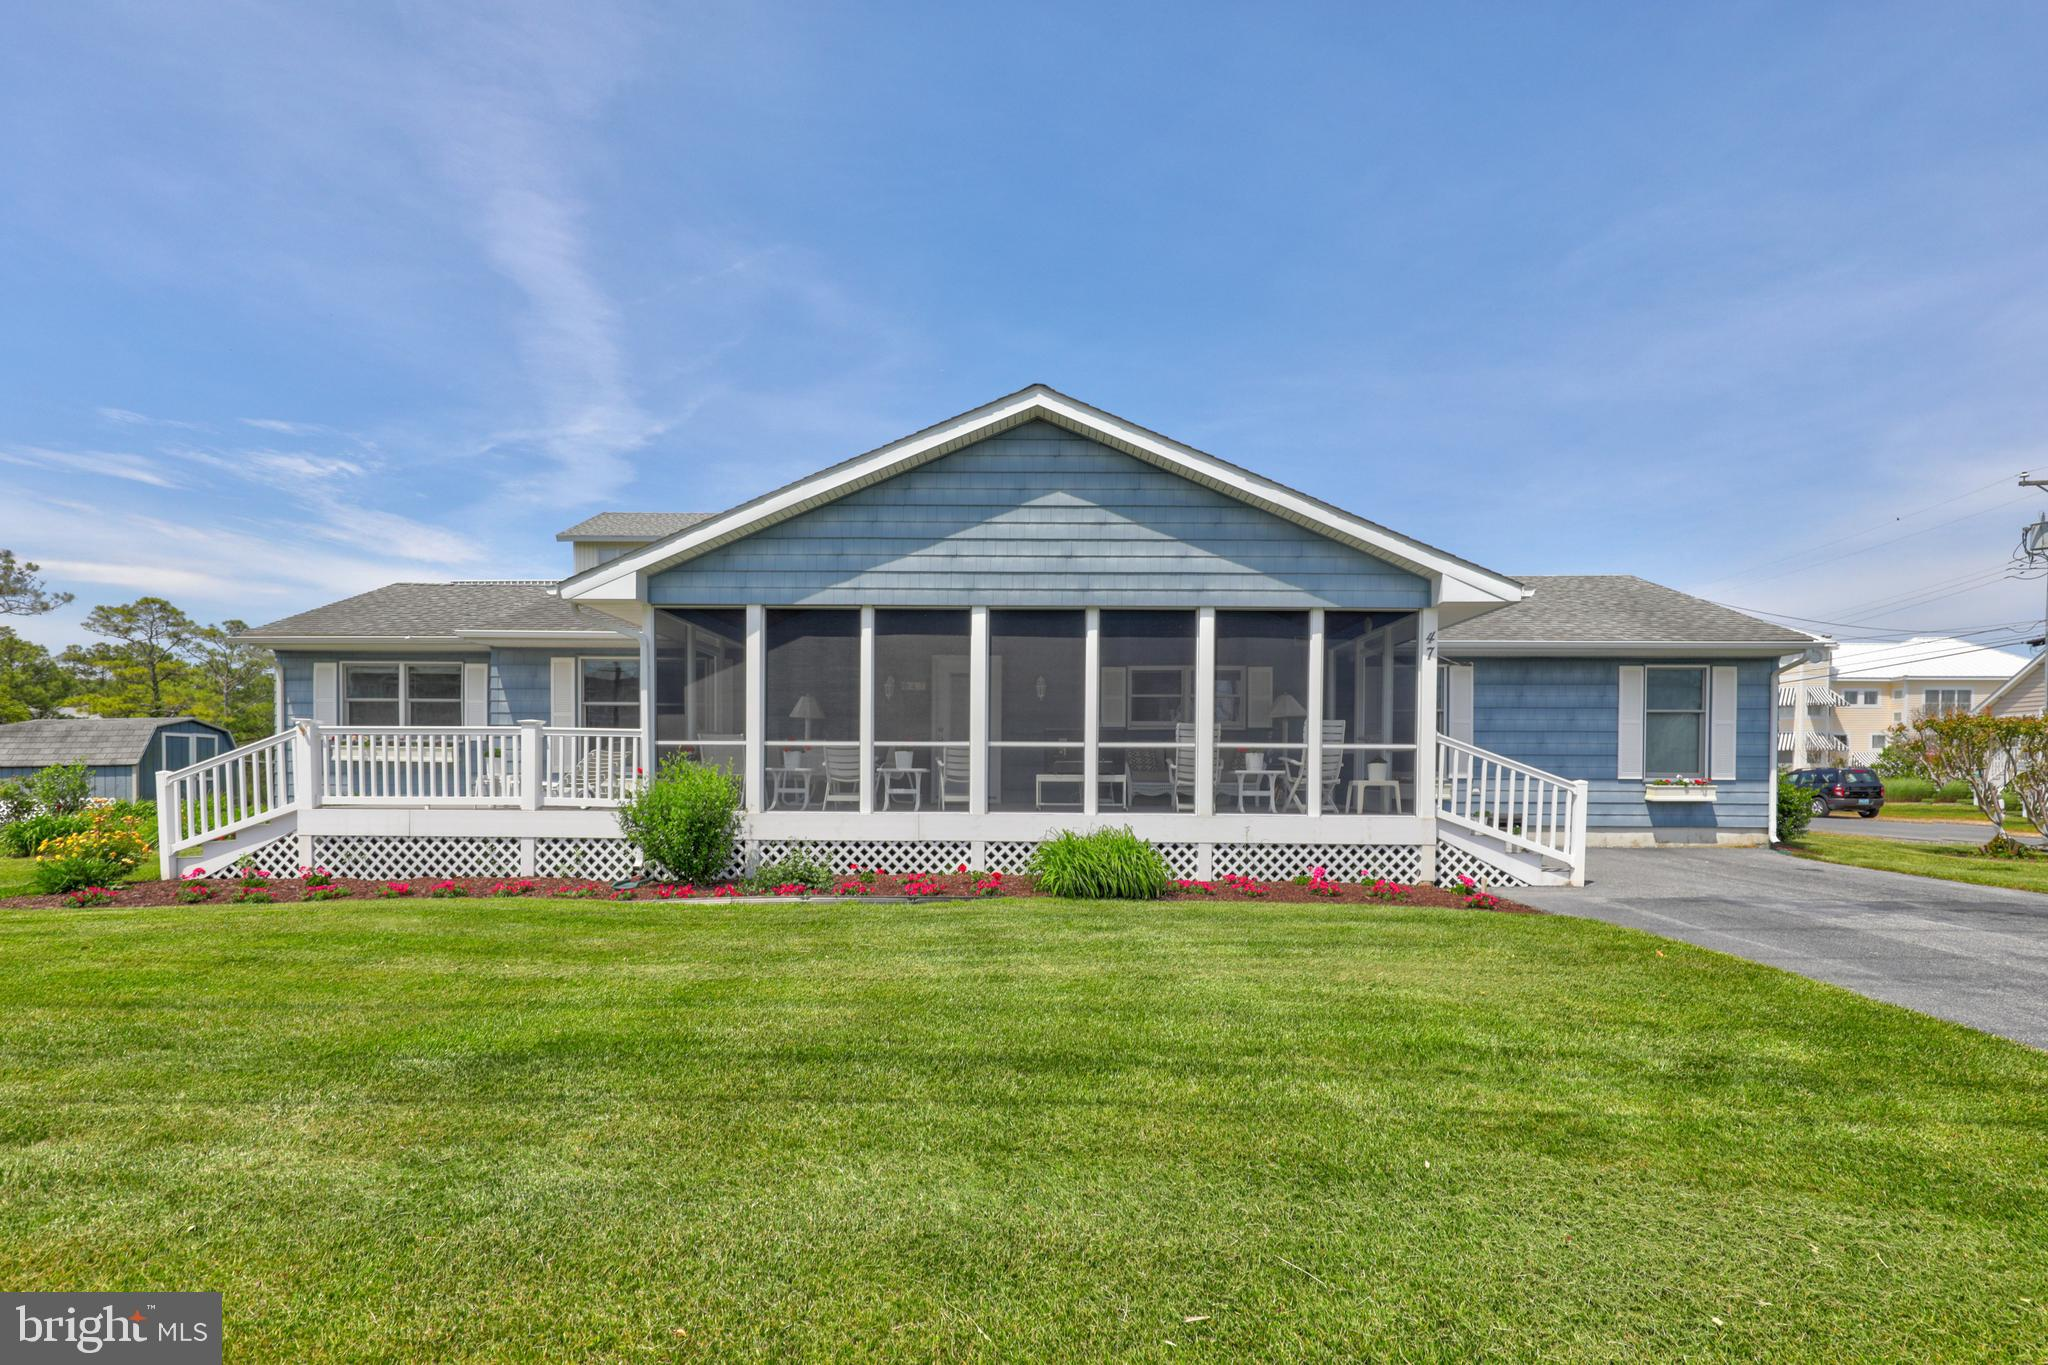 """Situated on 70 x 125 lot and one half parcel, this adorable coastal cottage is in one of the best locations in Bethany Beach, positioned on the """"Loop Canal"""", just a little over one block to the ocean and is in easy walking distance to downtown! The oversized screened porch welcomes you with soaring ceilings and an abundance of natural light to enjoy the breeze on quiet mornings or to nap on a summer afternoon.  The spacious one level floorplan offers an open kitchen/living room area and 4 bedrooms plus an office that could be a small 5th bedroom and 2 full bathrooms.  The outside shower and storage shed make coming and going from the beach a breeze.  Update this meticulously cared for property over time or build your custom dream home with plenty of space for a pool on this oversized parcel -  the possibilities are endless!   Situated just one block to the ocean and only a few streets from the heart of town with its fantastic restaurants and boutique shops, the sale of this property is subject to the sellers maintaining occupancy of the home until September 15, 2021."""